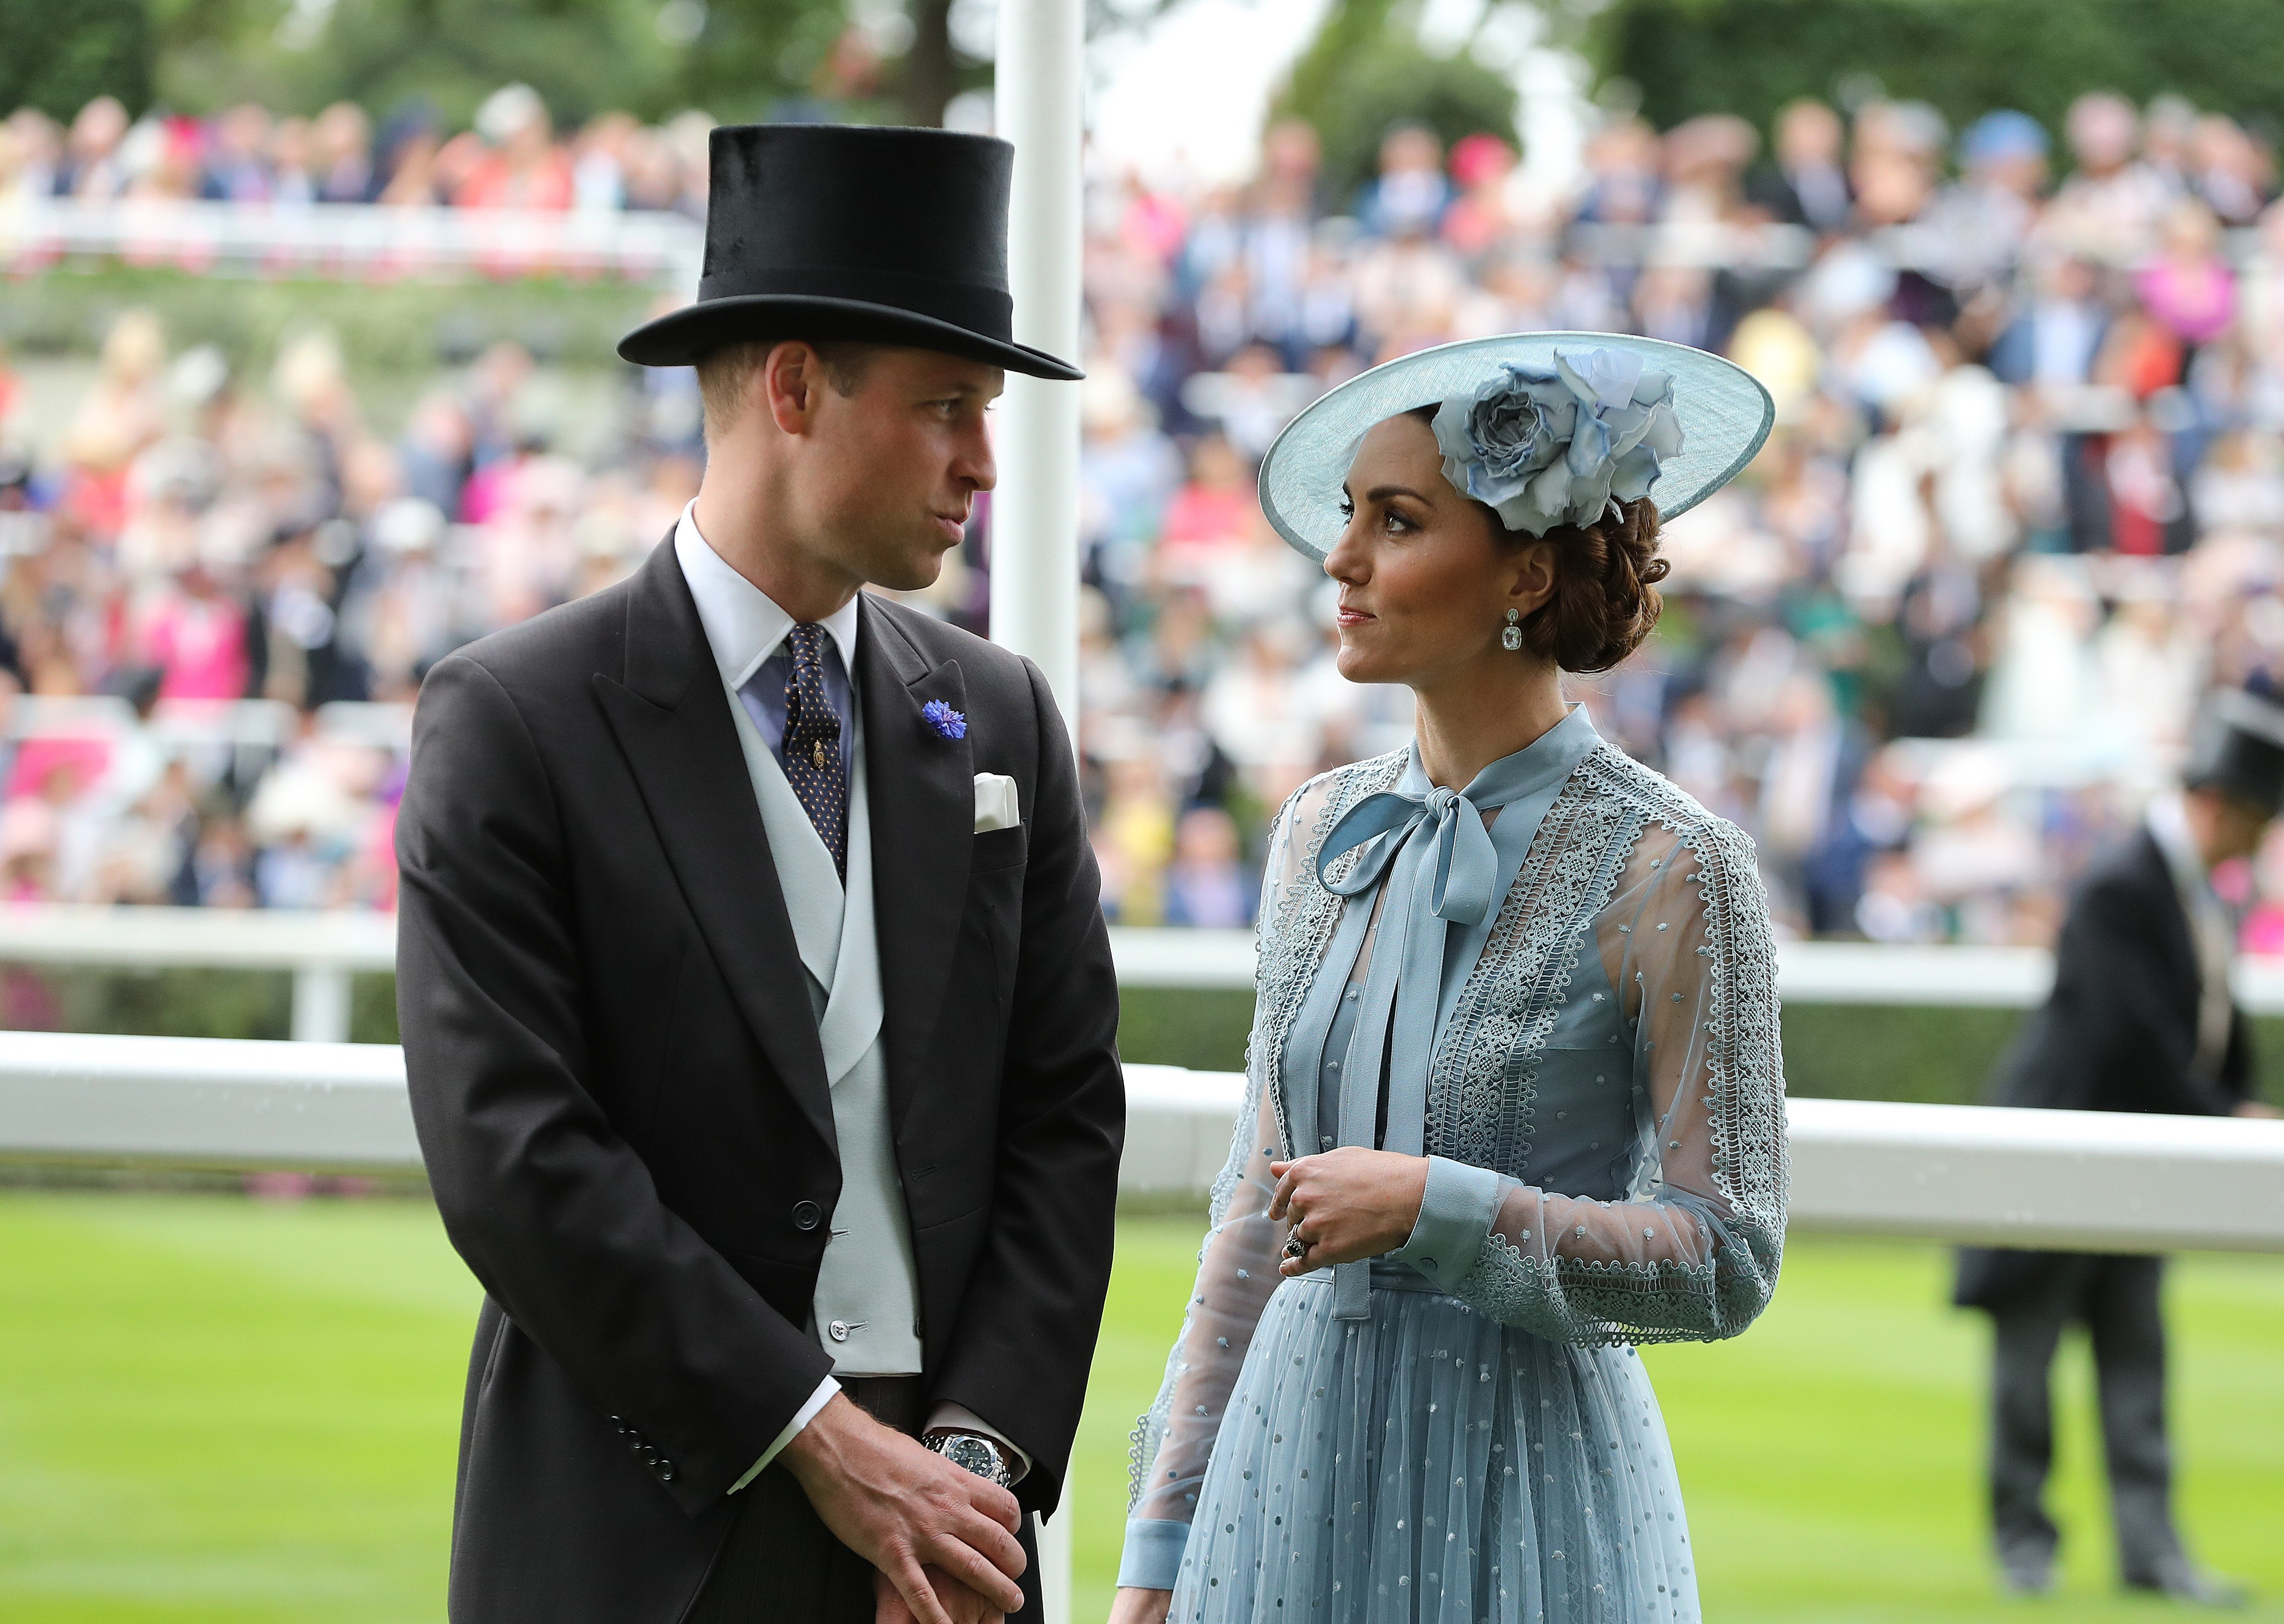 Prince William et Duchesse Kate au Royal Ascot | Photo : Getty Images